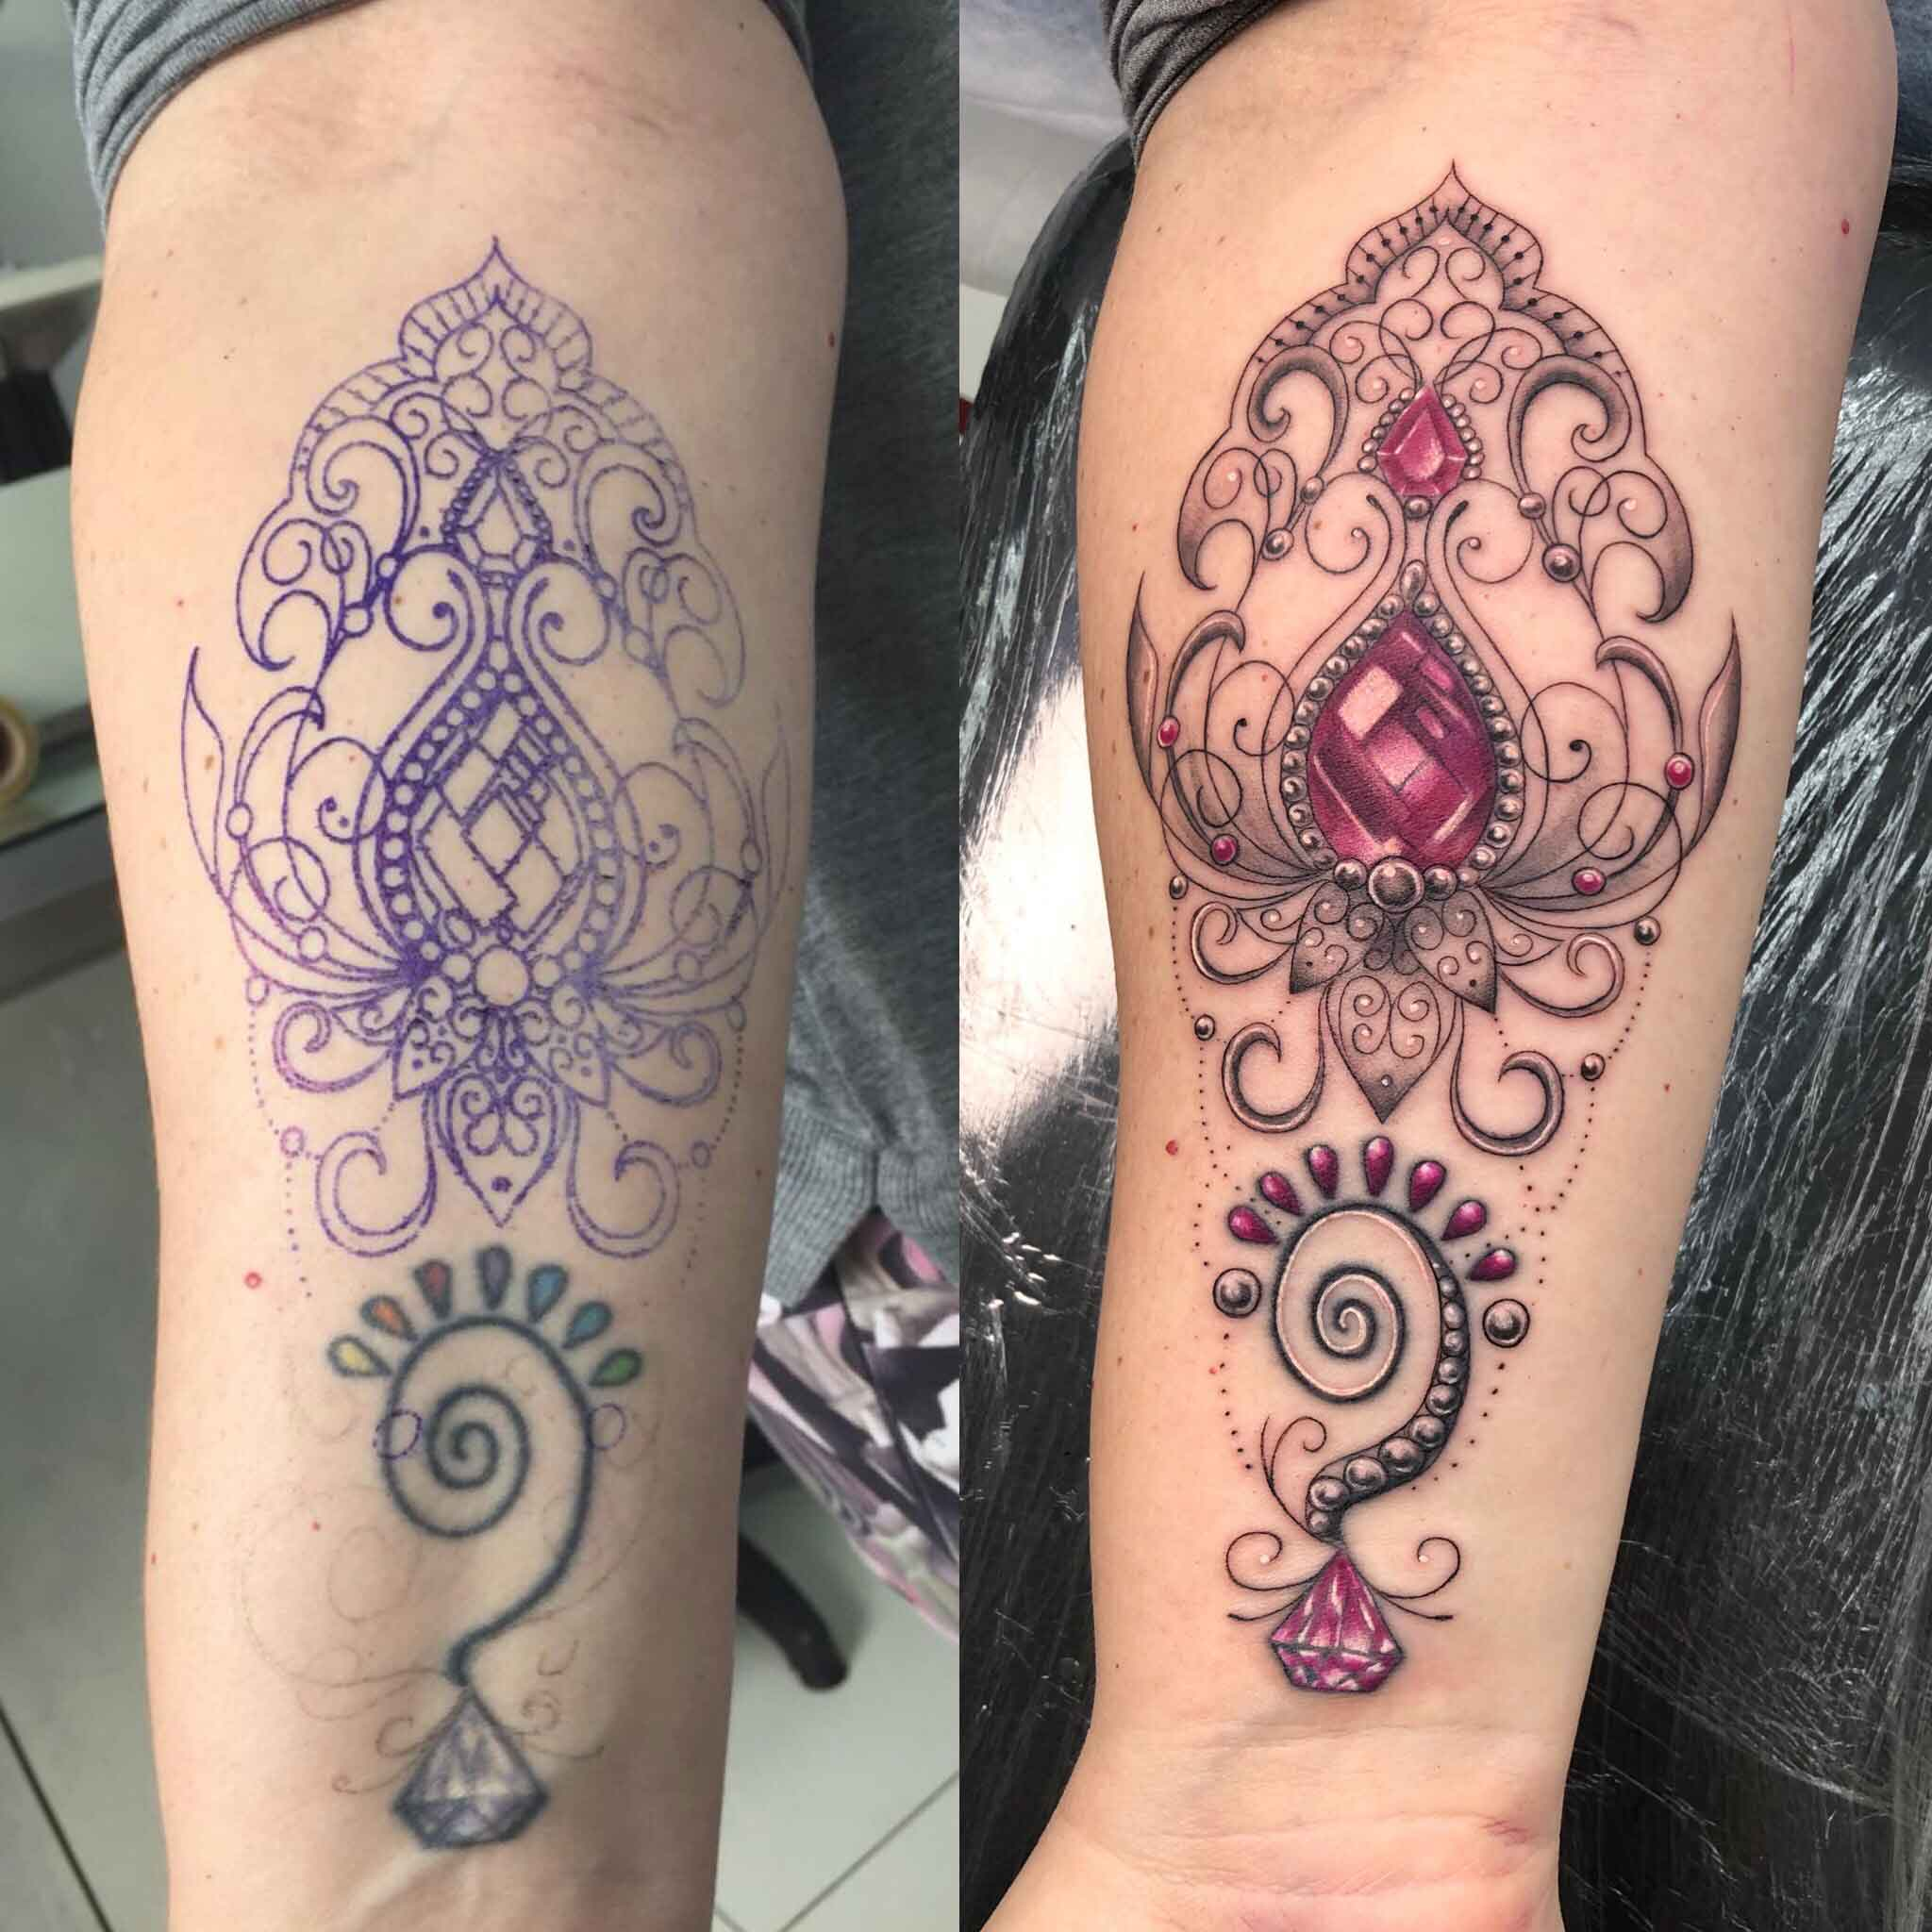 before and after cover up tattoo by Karlla Mendes